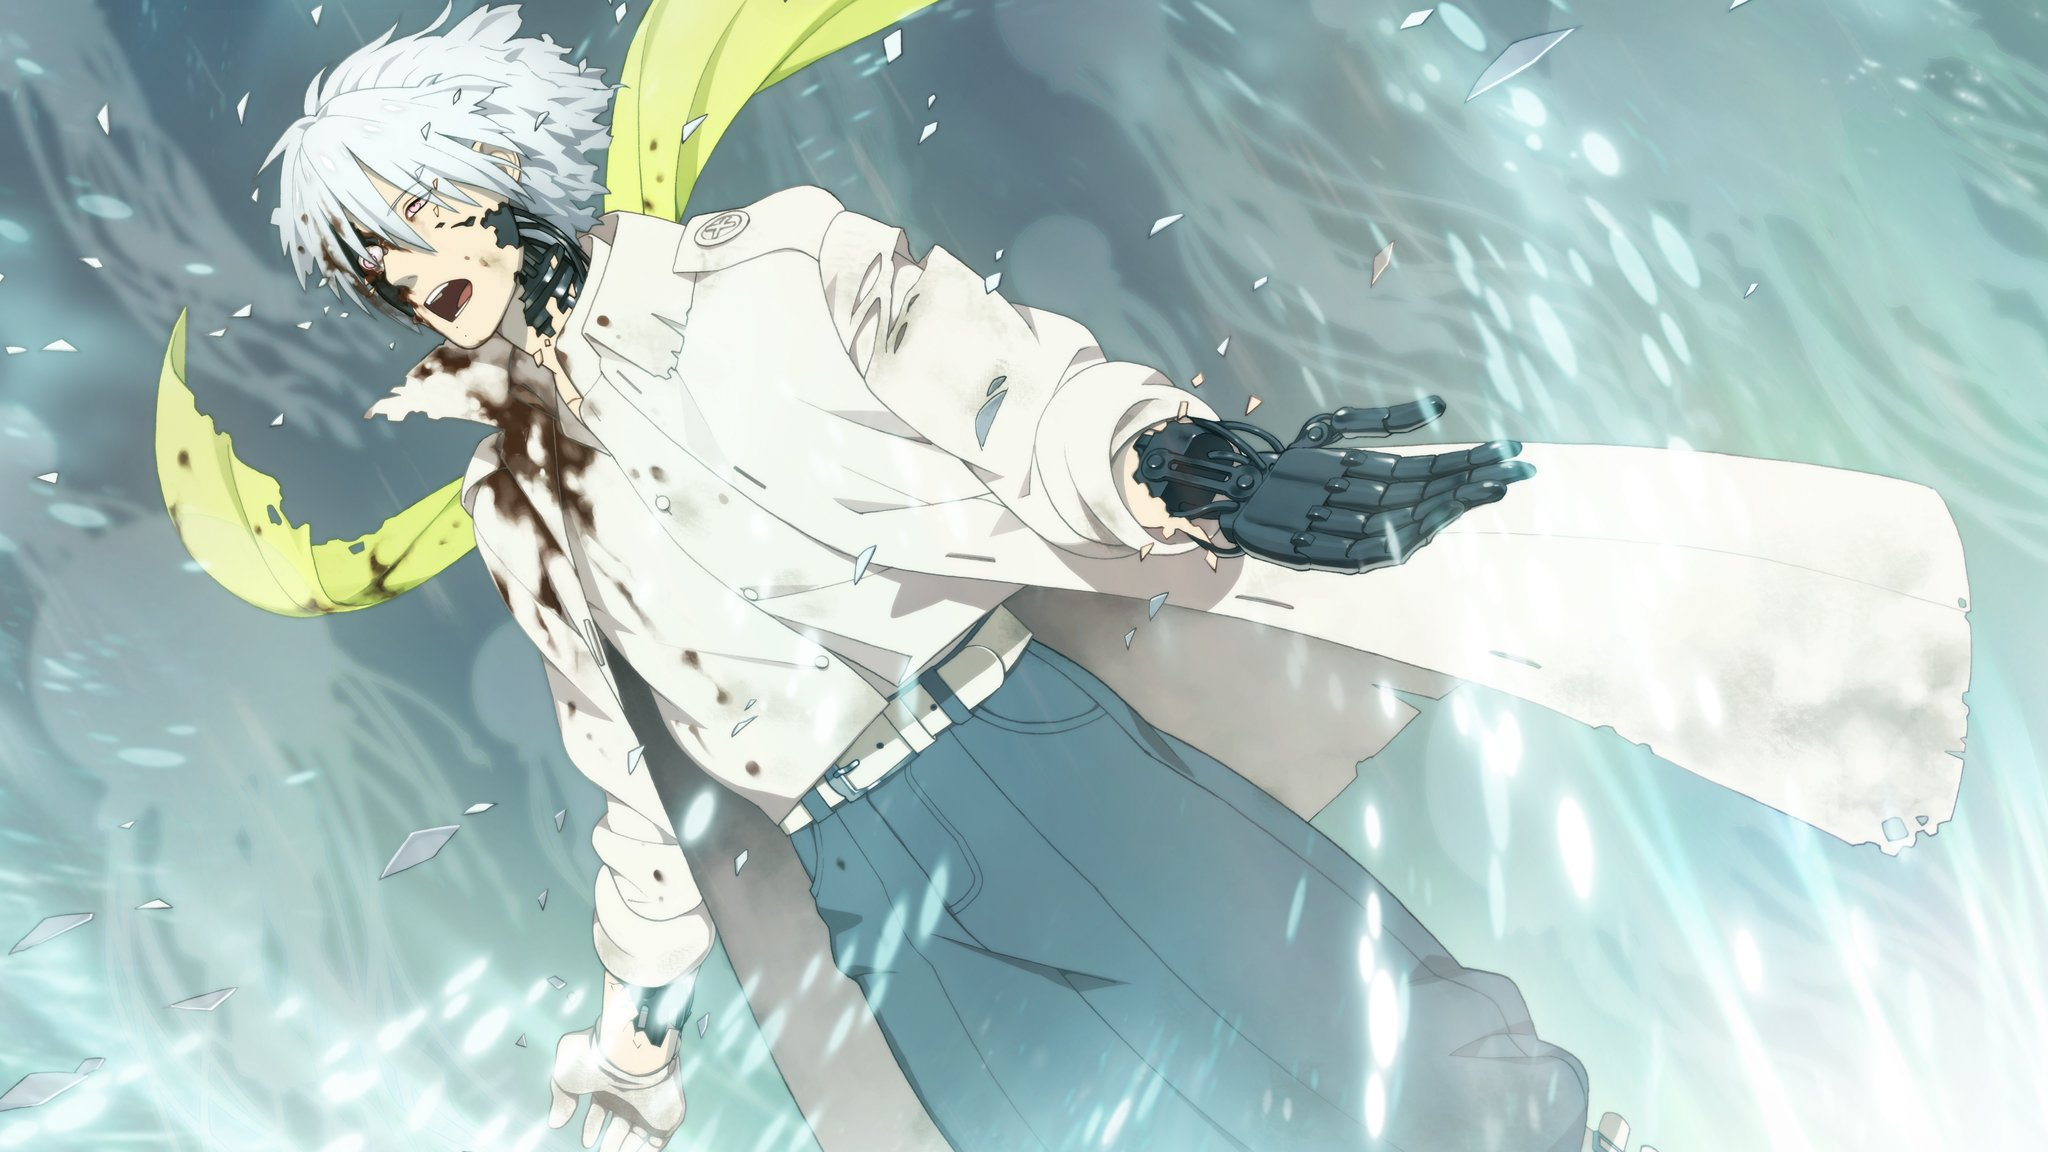 DRAMAtical Murder Clear f wallpaper | 2048x1152 | 340750 ...